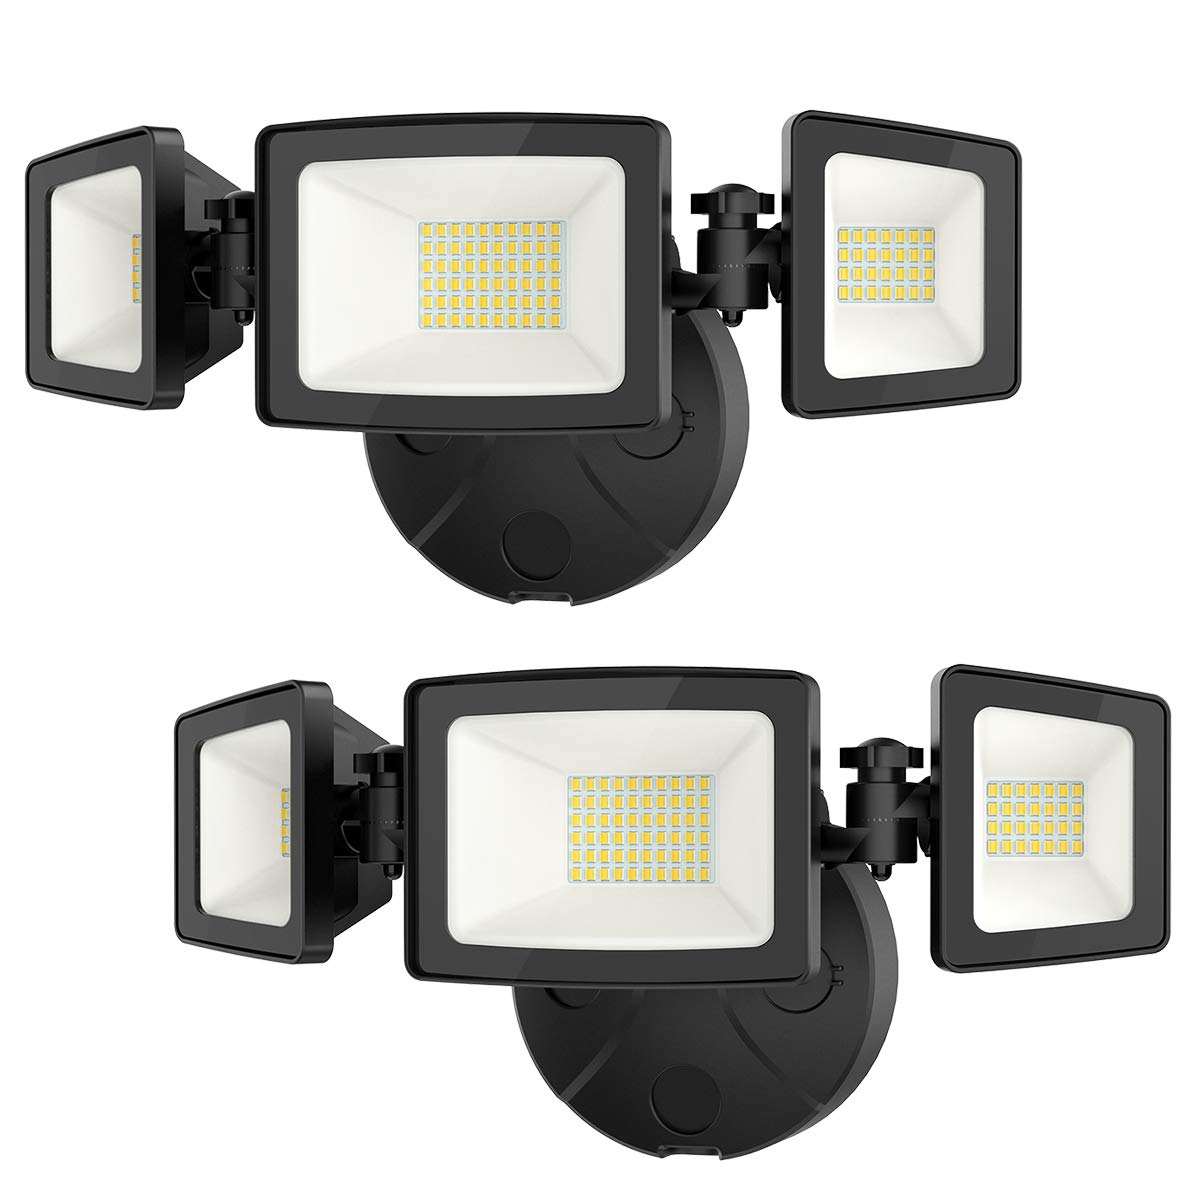 Onforu 2 Pack 50W LED Security Light, 5000LM Super Bright Outdoor Flood Light, 5000K, IP65 Waterproof, 3 Adjustable Heads Flood Light for Garage, Patio, Garden, Porch&Stair